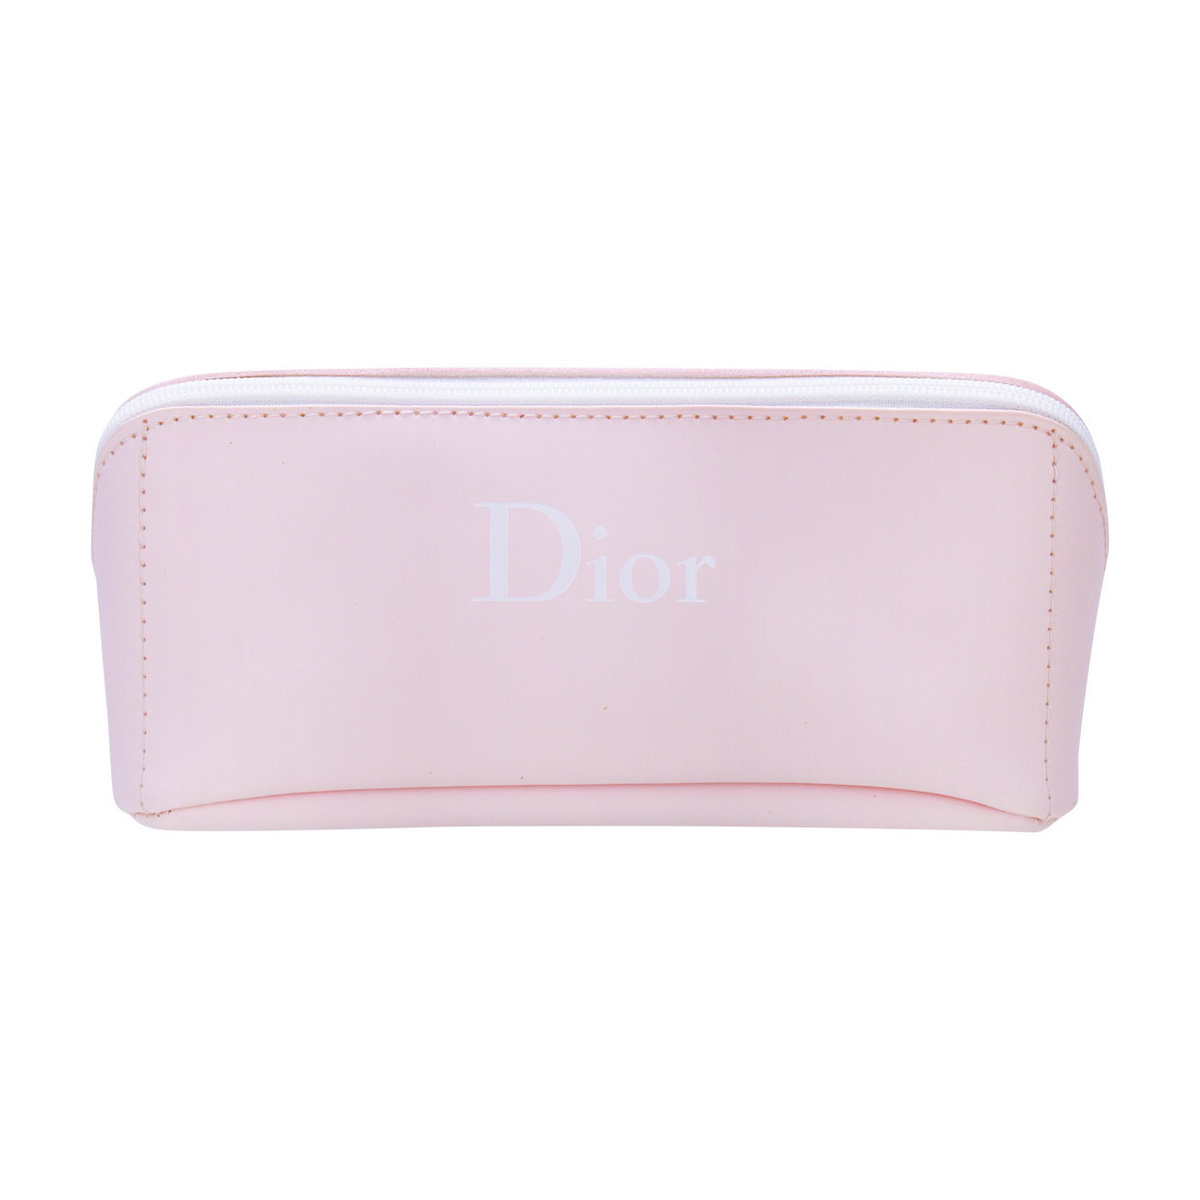 Beauty Box soft leather pink zipper bag - [Original licensed Product]